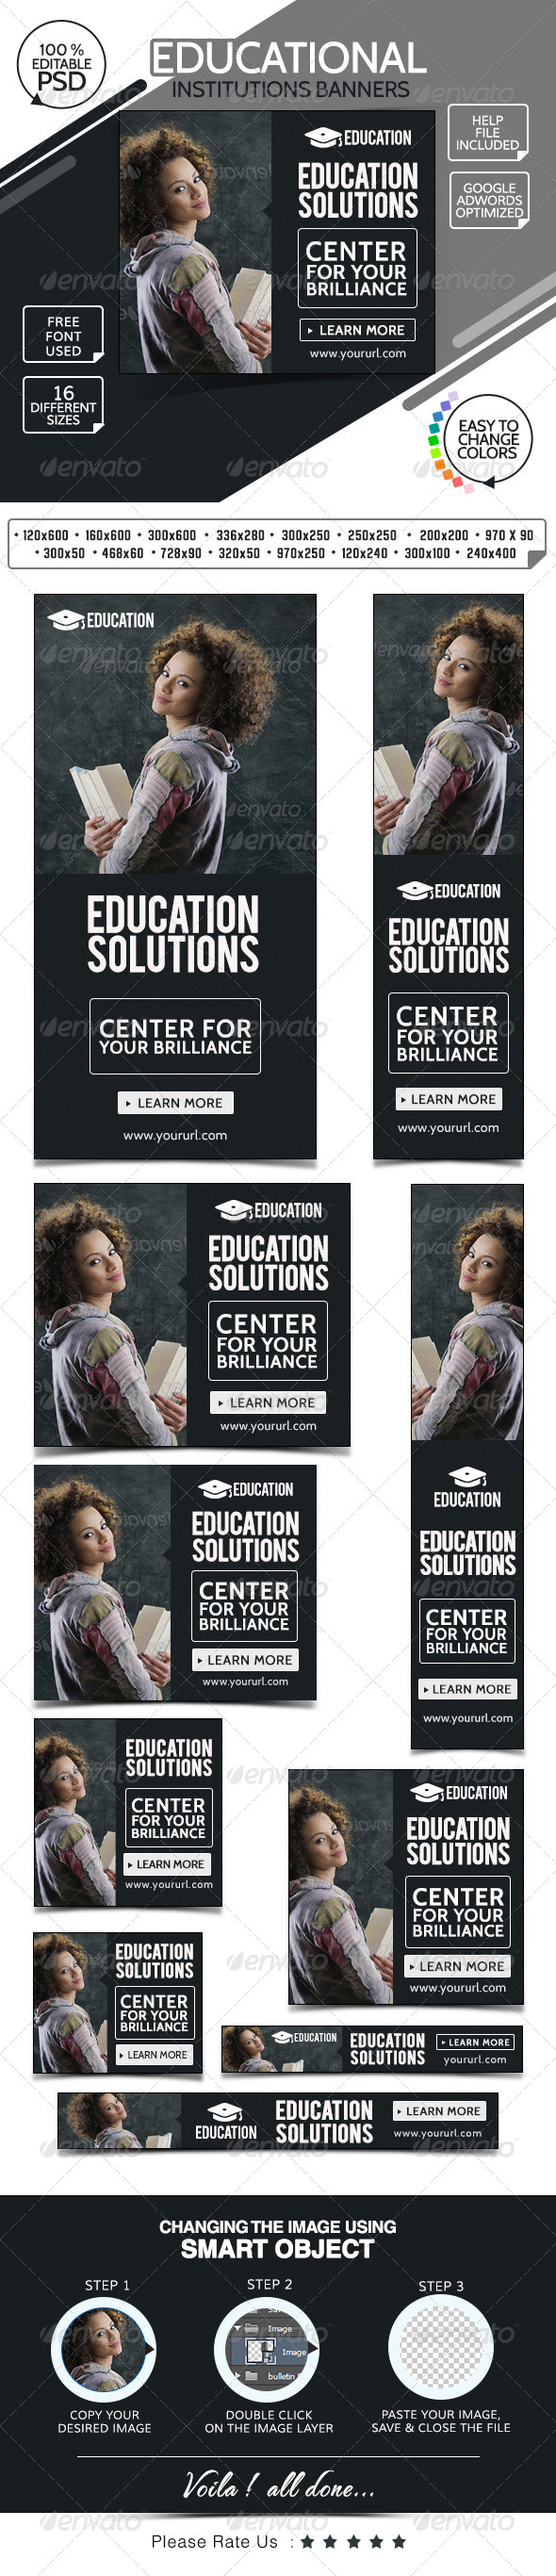 College & Education Web Banners Template PSD | Buy and Download ...